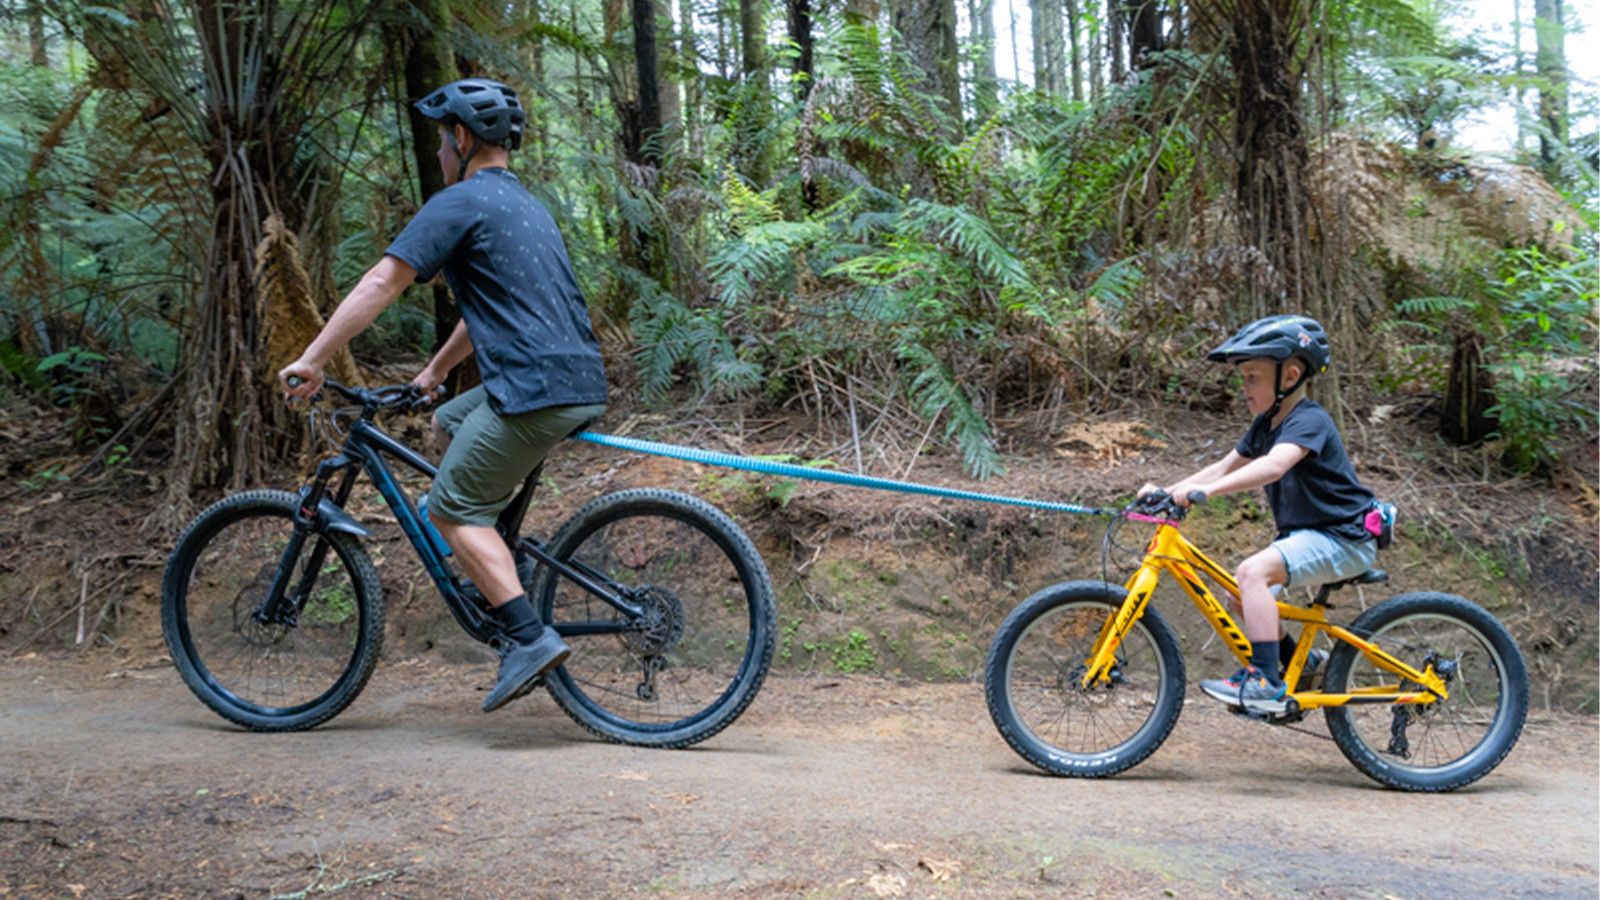 Time to Graduate from Shotgun to Tow Rope - Kids Ride Shotgun Expands the Line